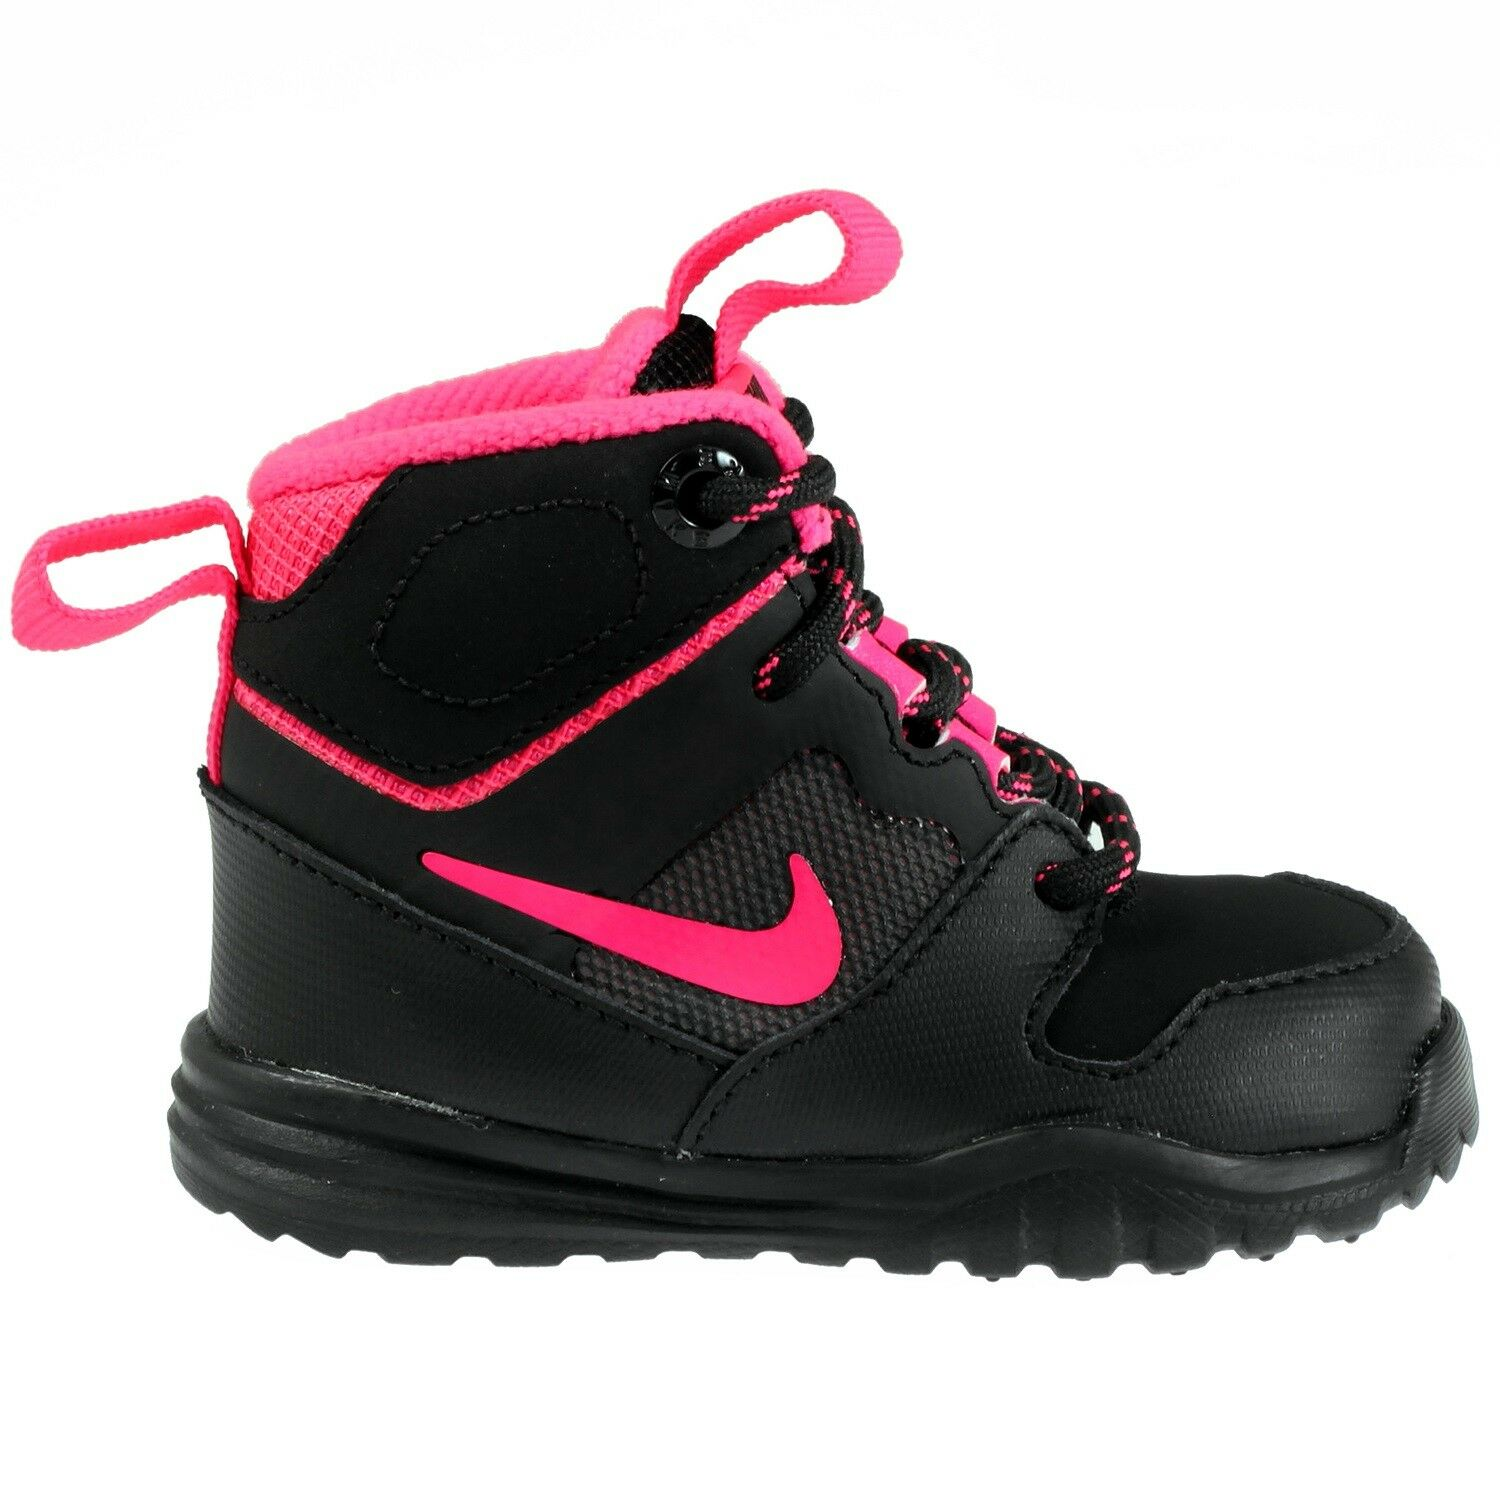 Nike Hills Mid Toddlers 685623-002